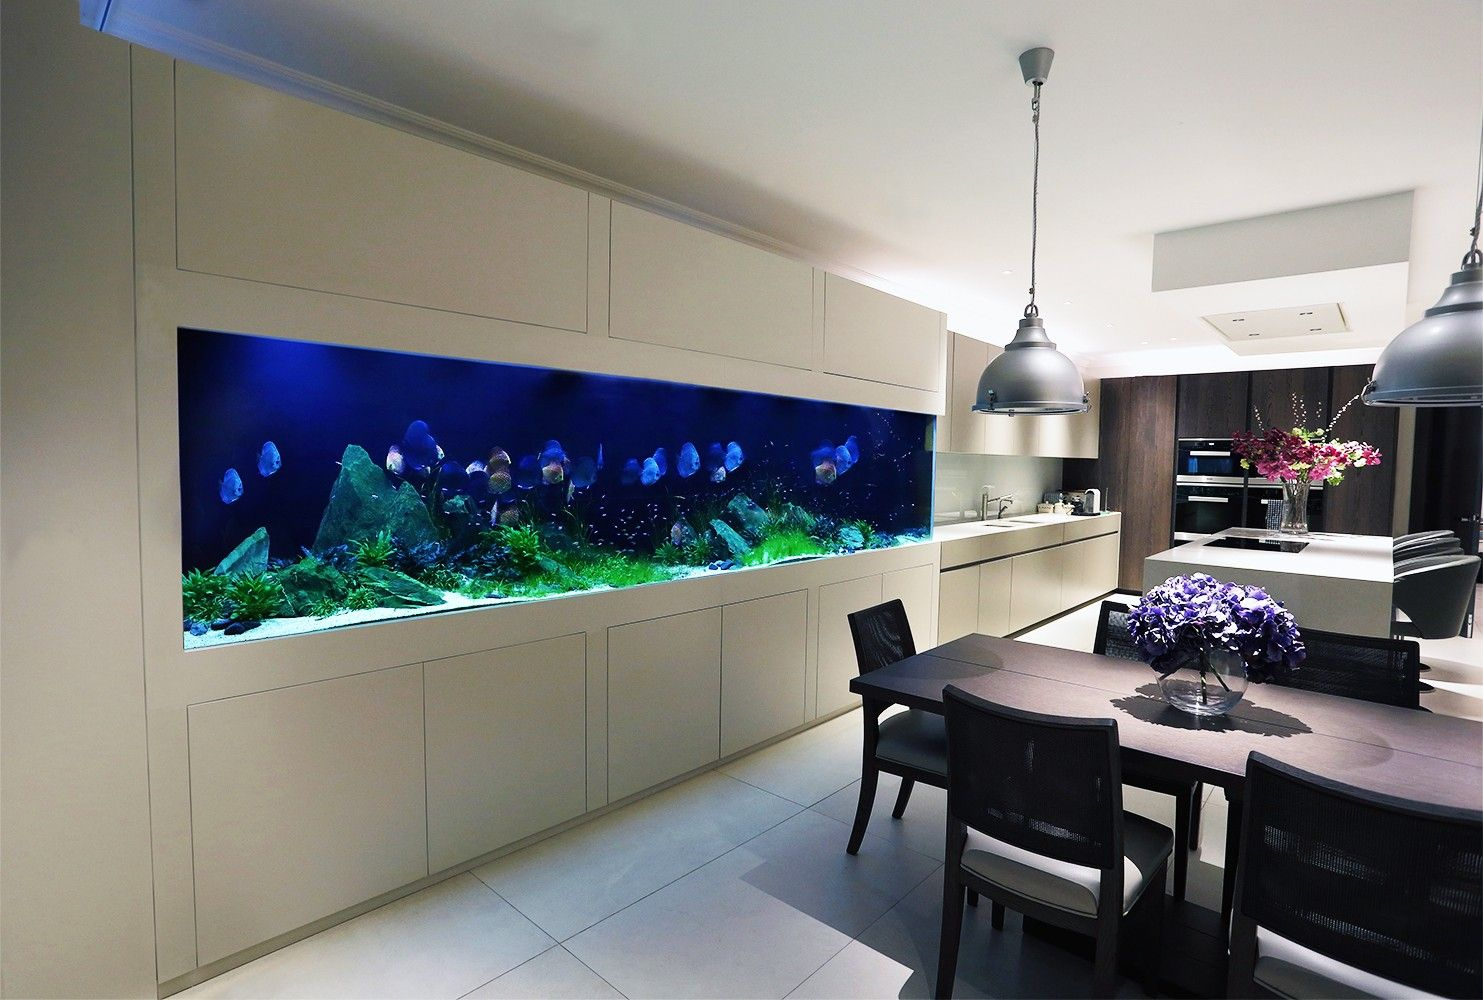 transforming kitchen cabinets transform the way your home looks using a fish tank 2912